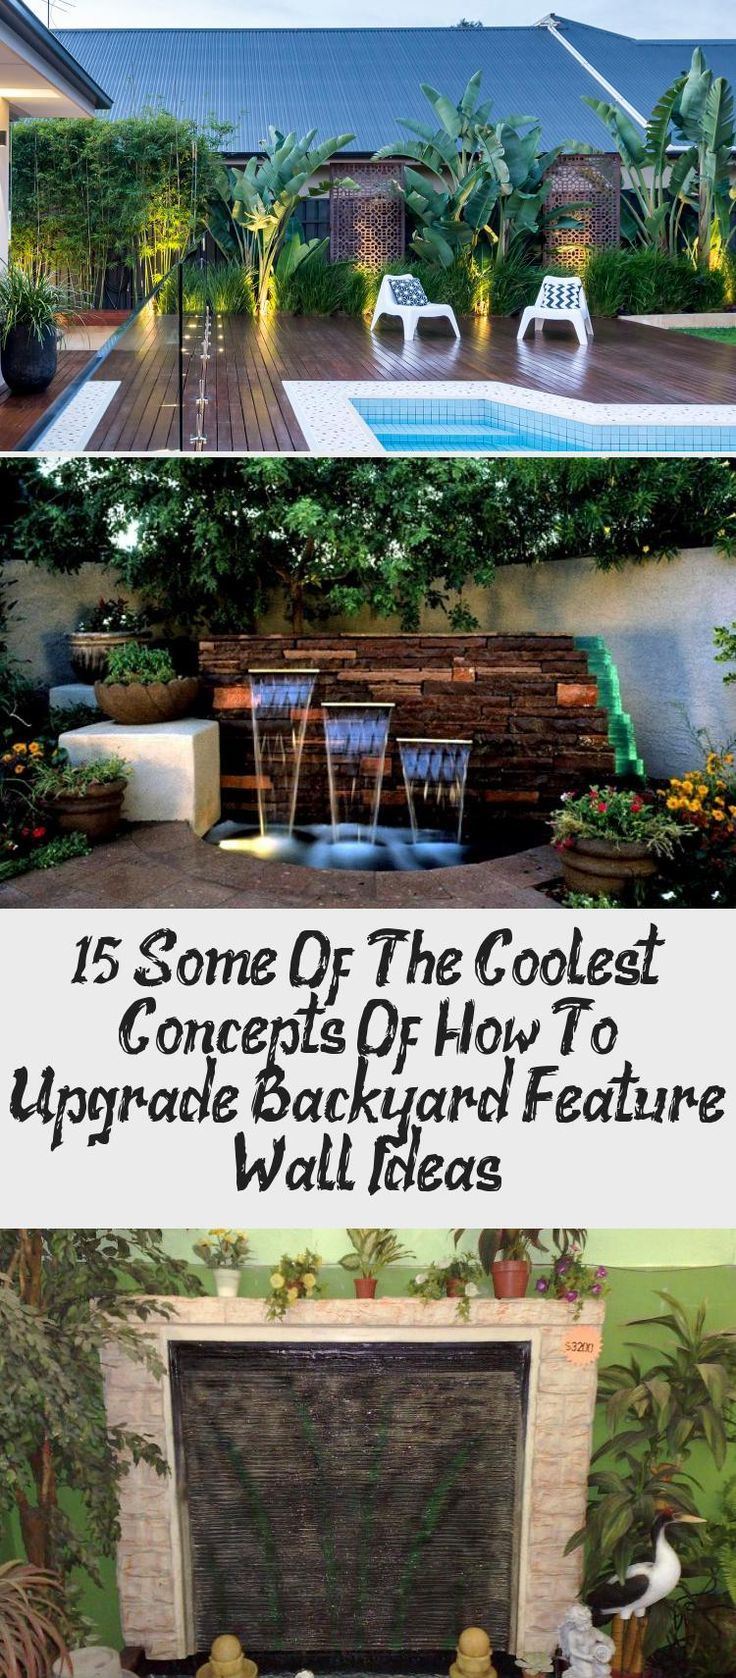 15 Some Of The Coolest Concepts Of How To Upgrade Backyard ...